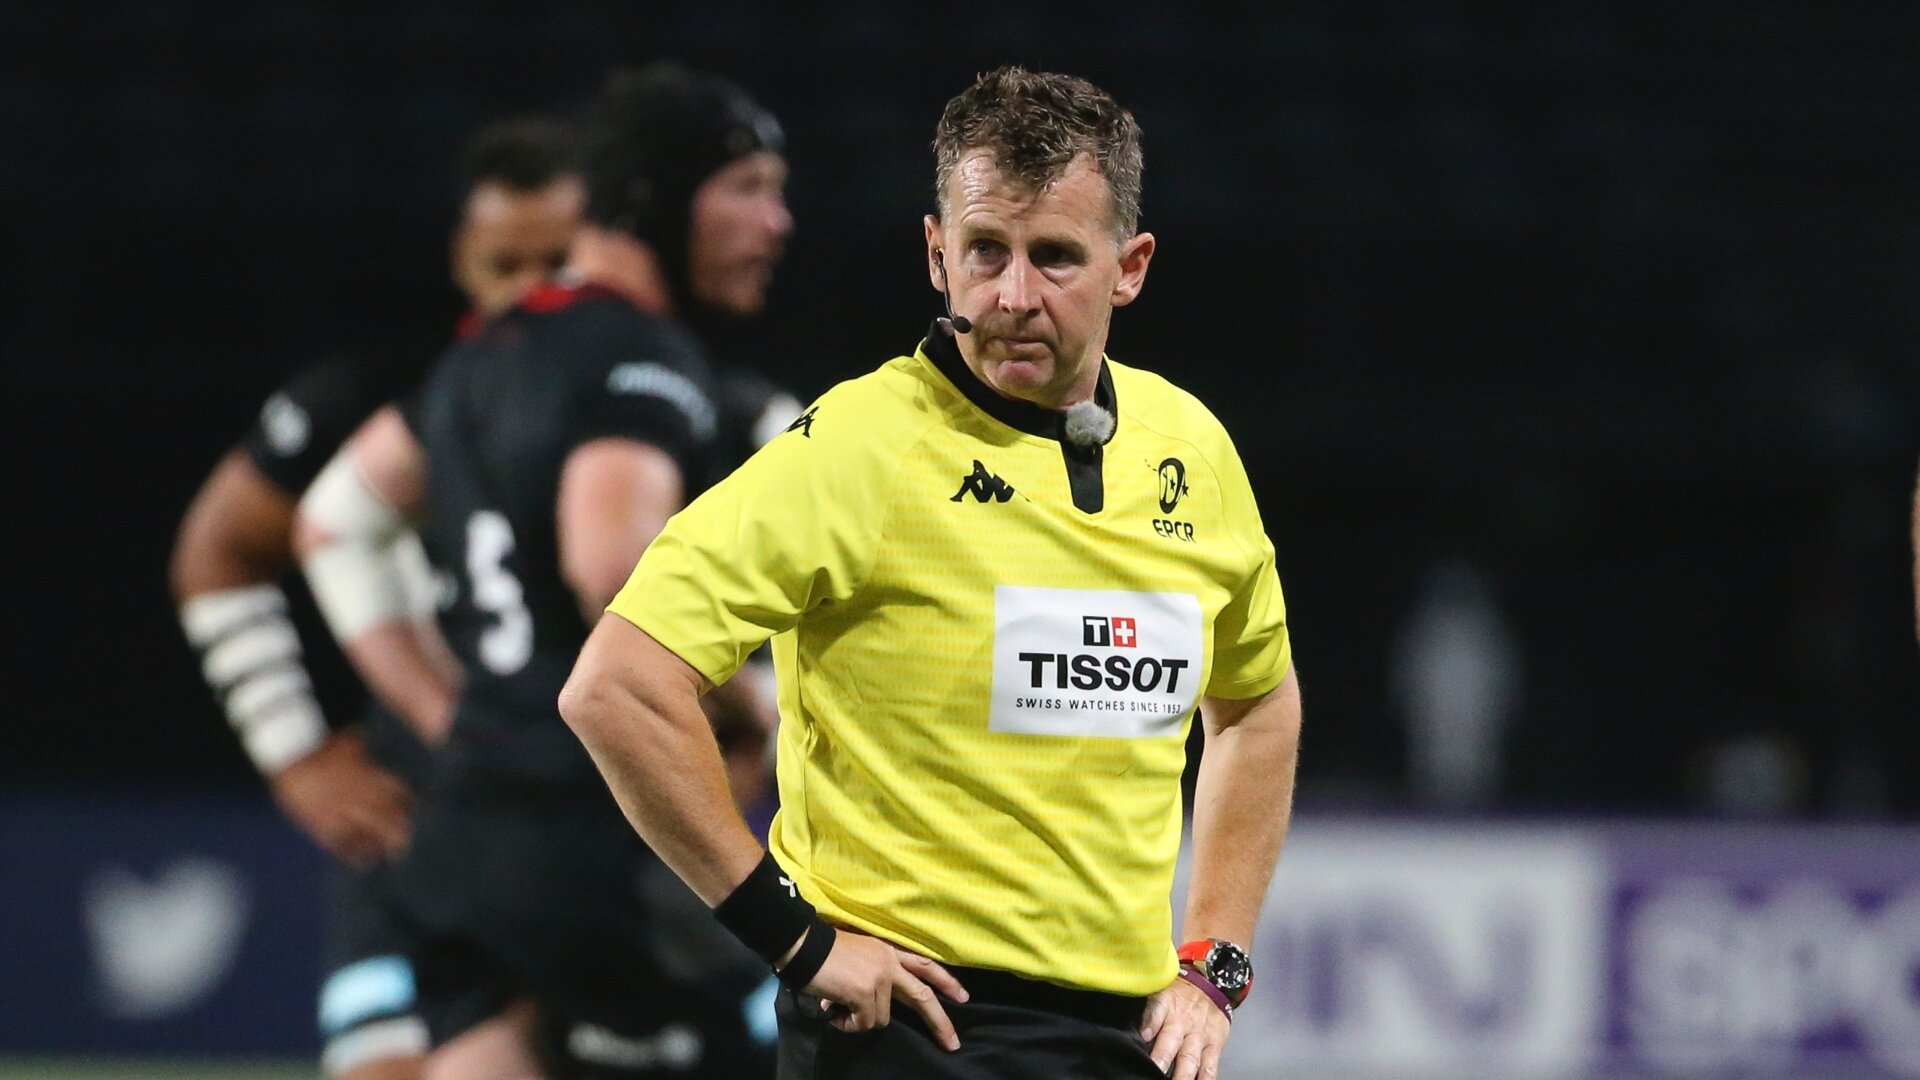 Match referee Nigel Owens has had his say on Saturday's Exeter vs Racing final